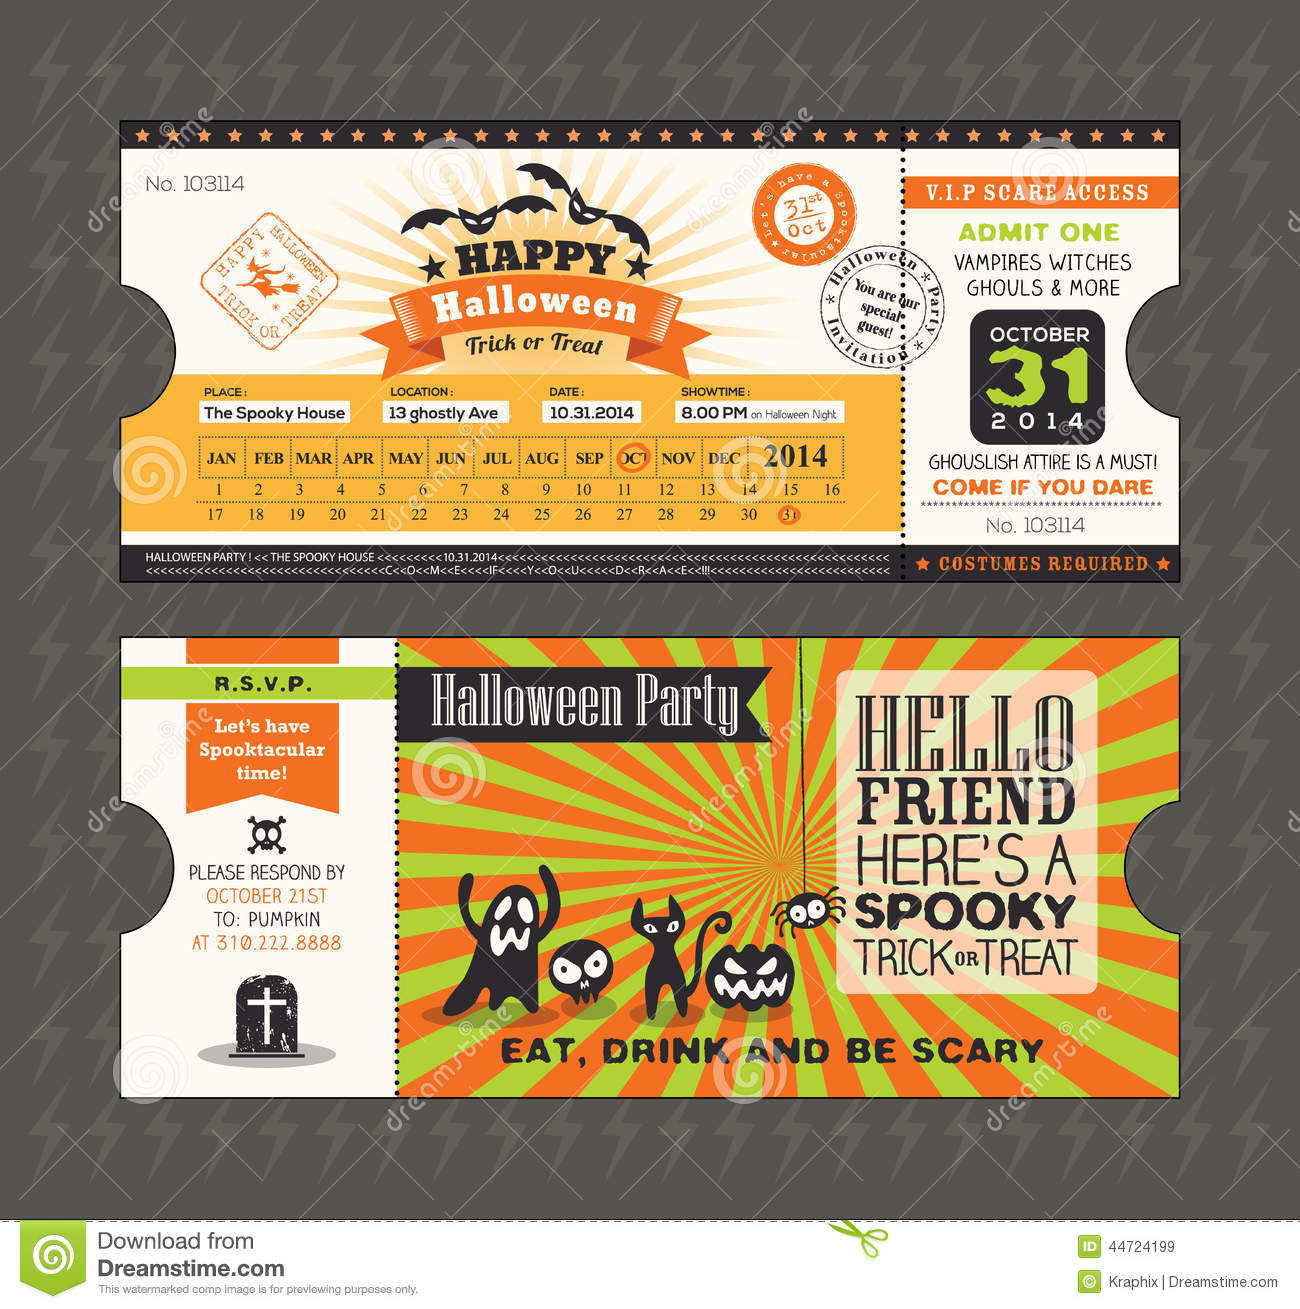 Halloween Party Invitation Text for awesome invitations design